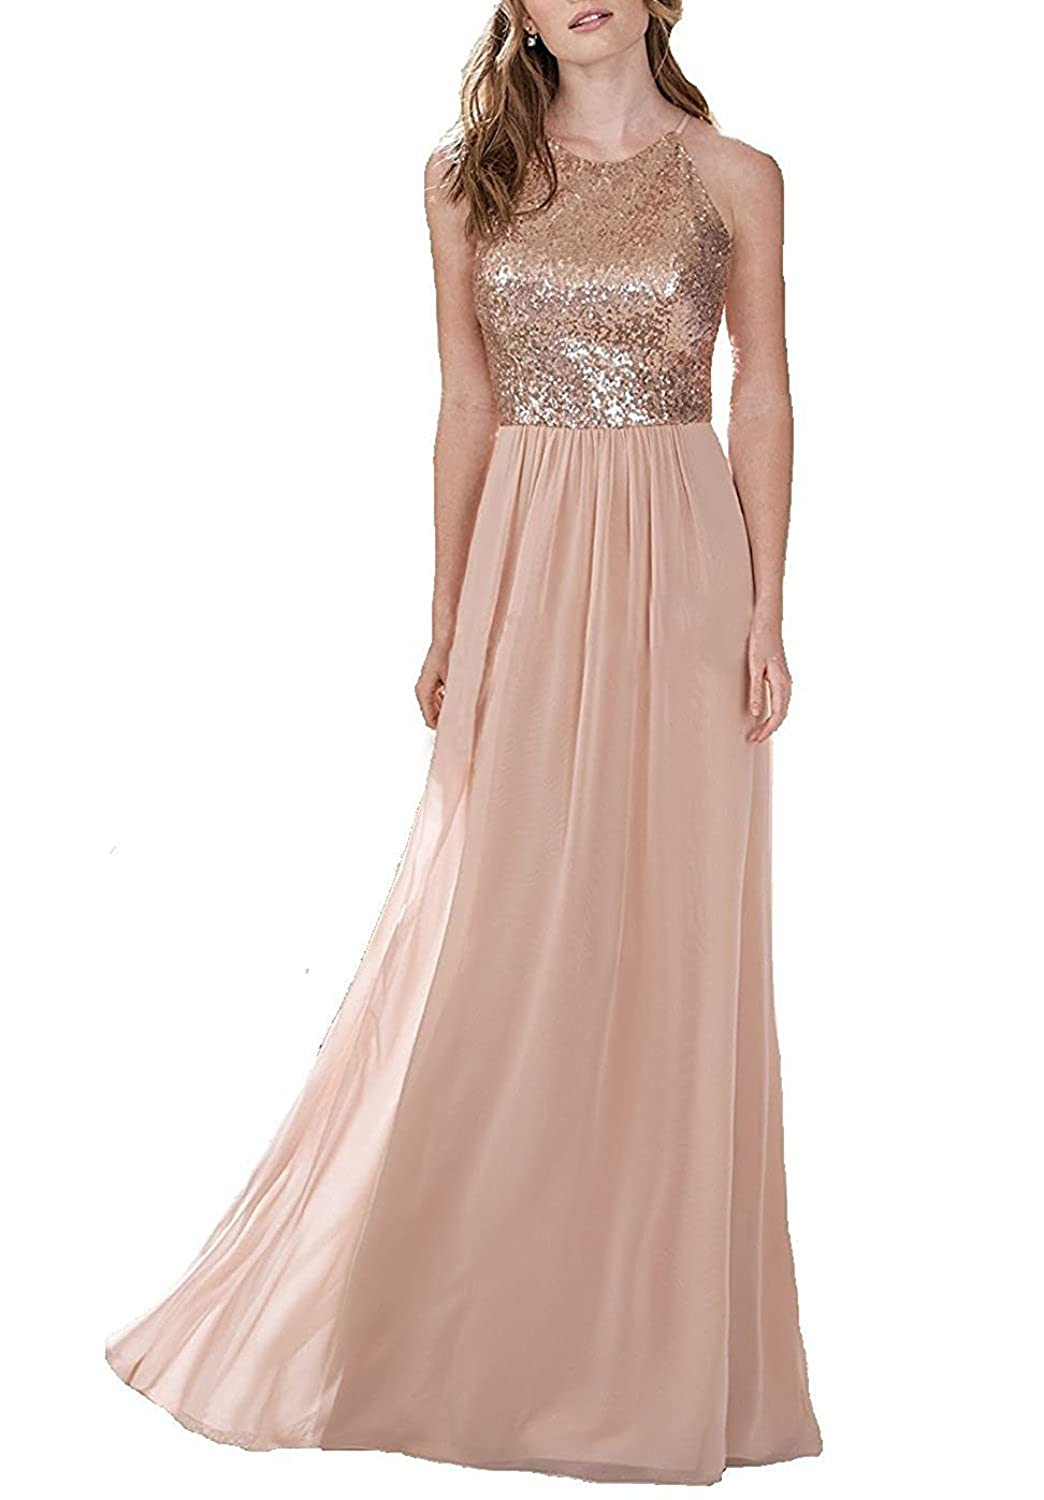 Rongstore Womens Long Bridesmaid Dress Sequin and Chiffon Prom Party Dresses RB014